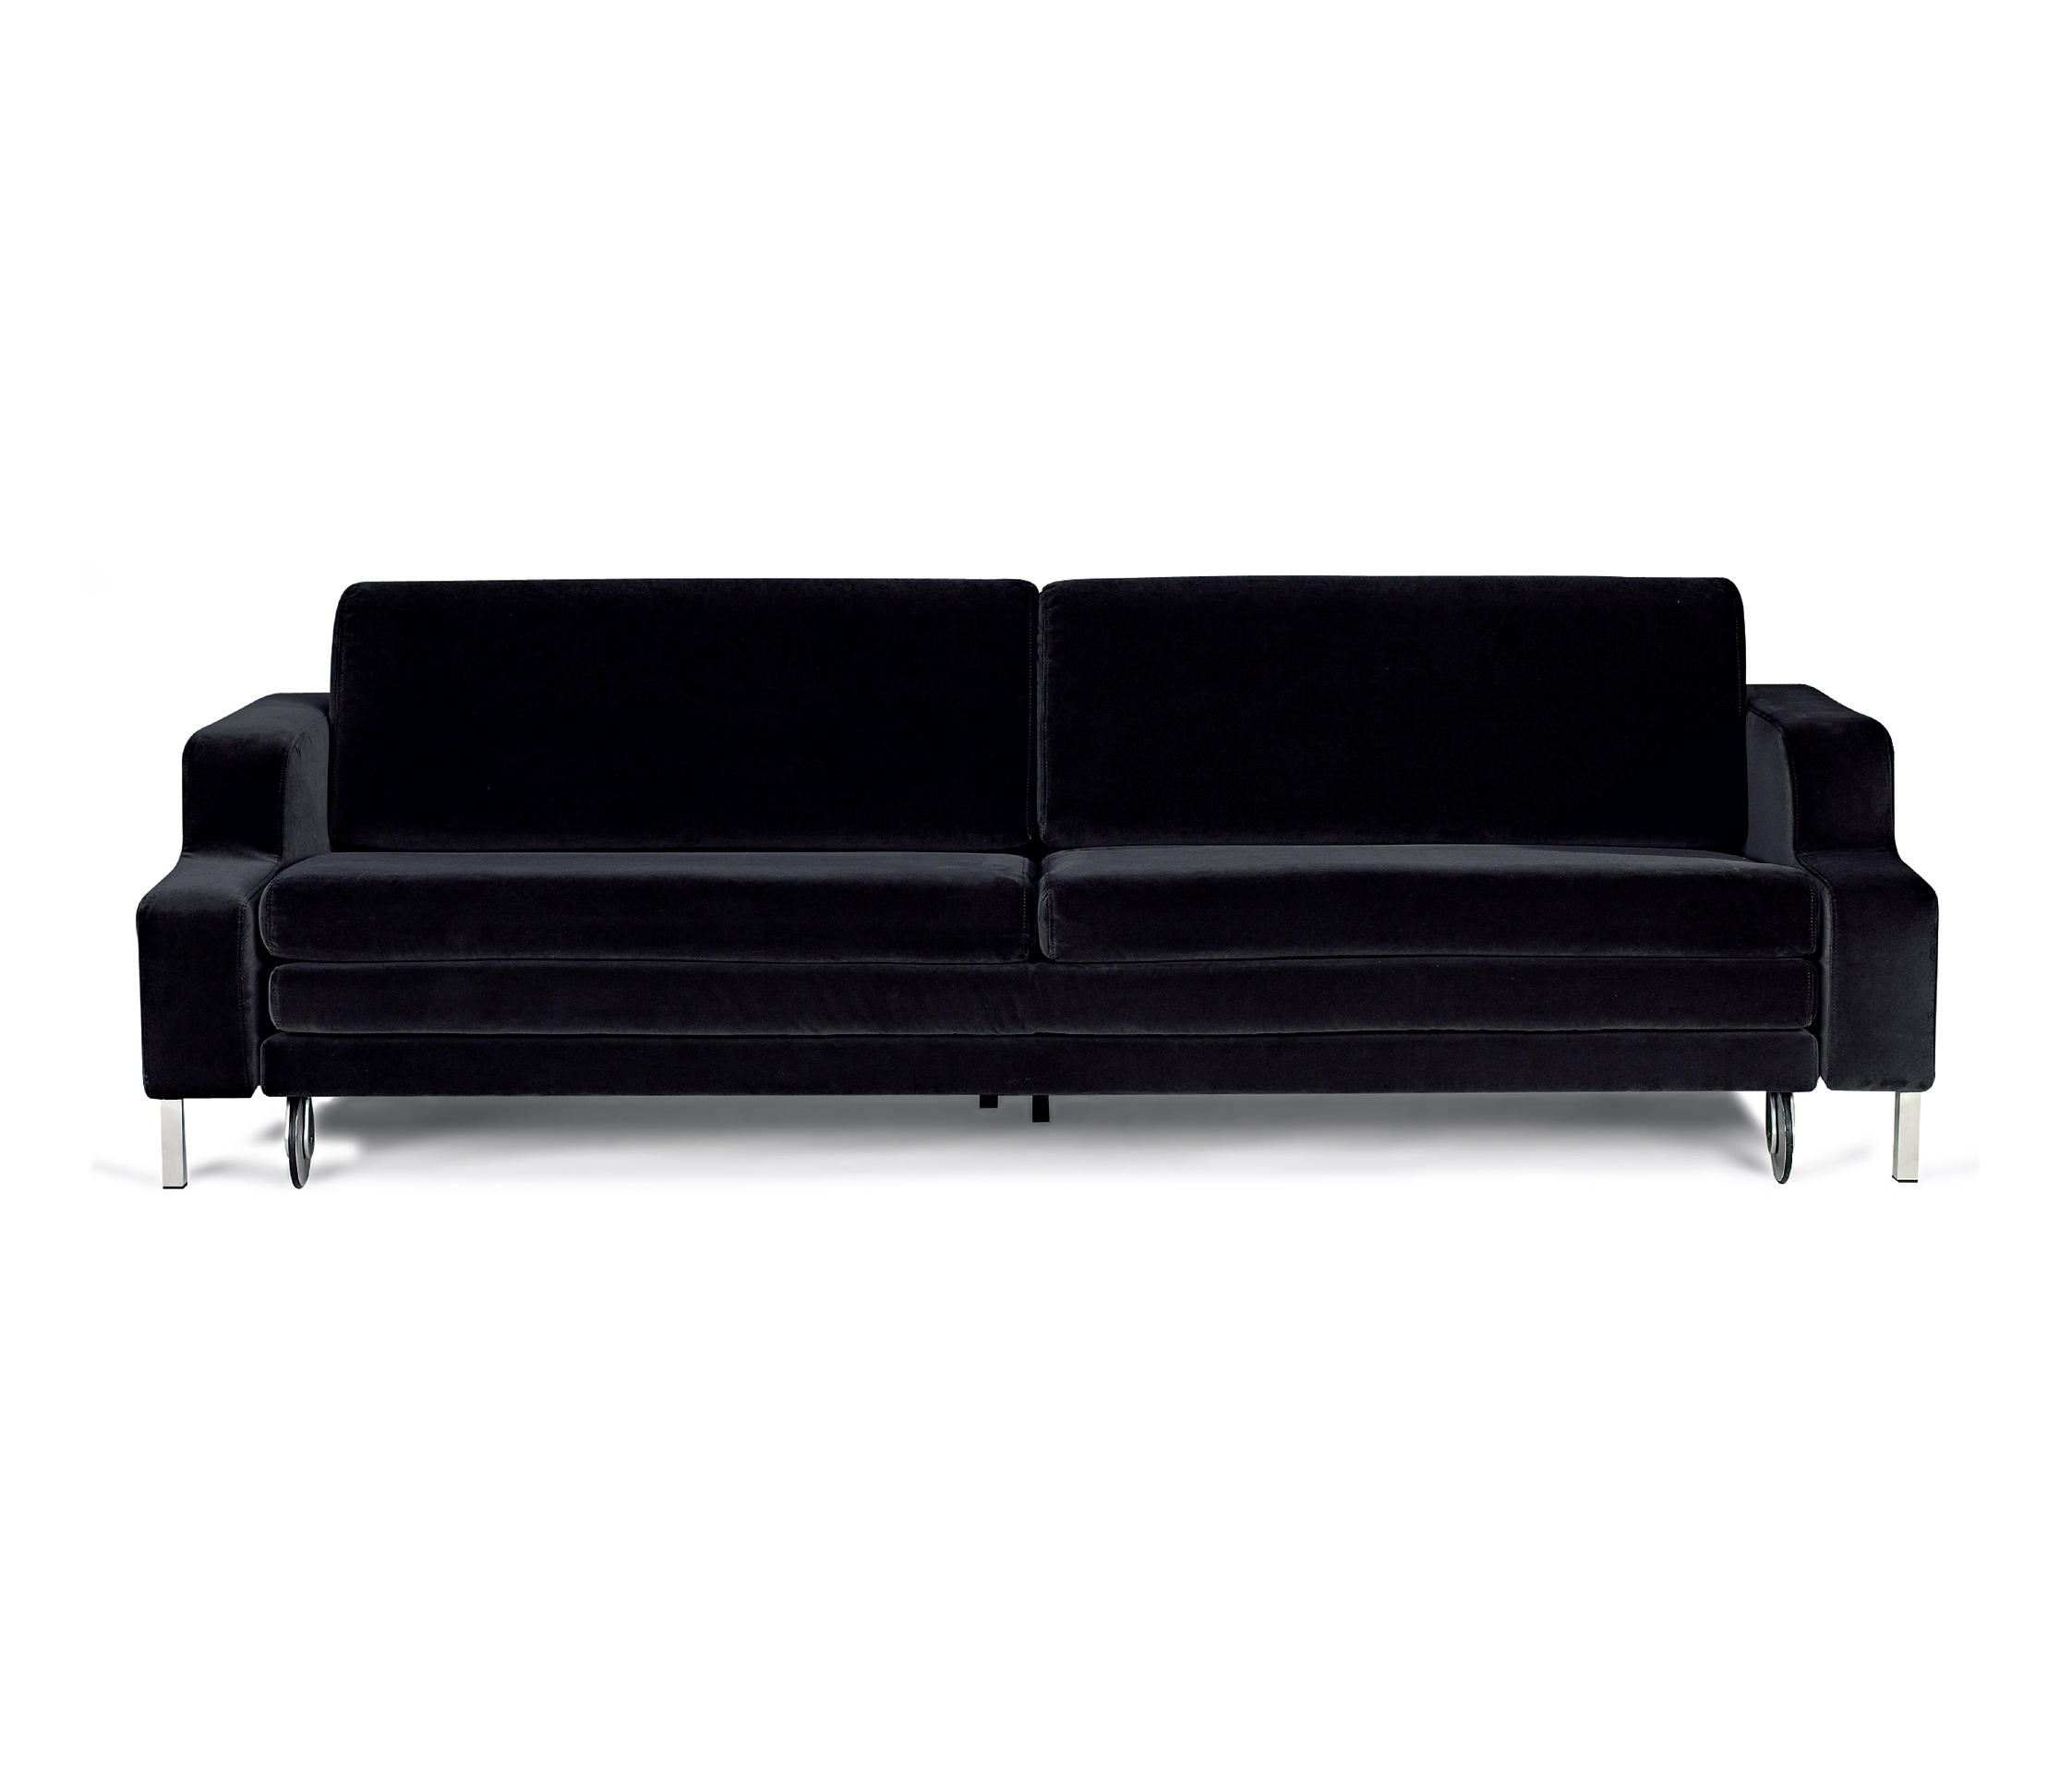 com sofa schlafsofas von comforty architonic. Black Bedroom Furniture Sets. Home Design Ideas